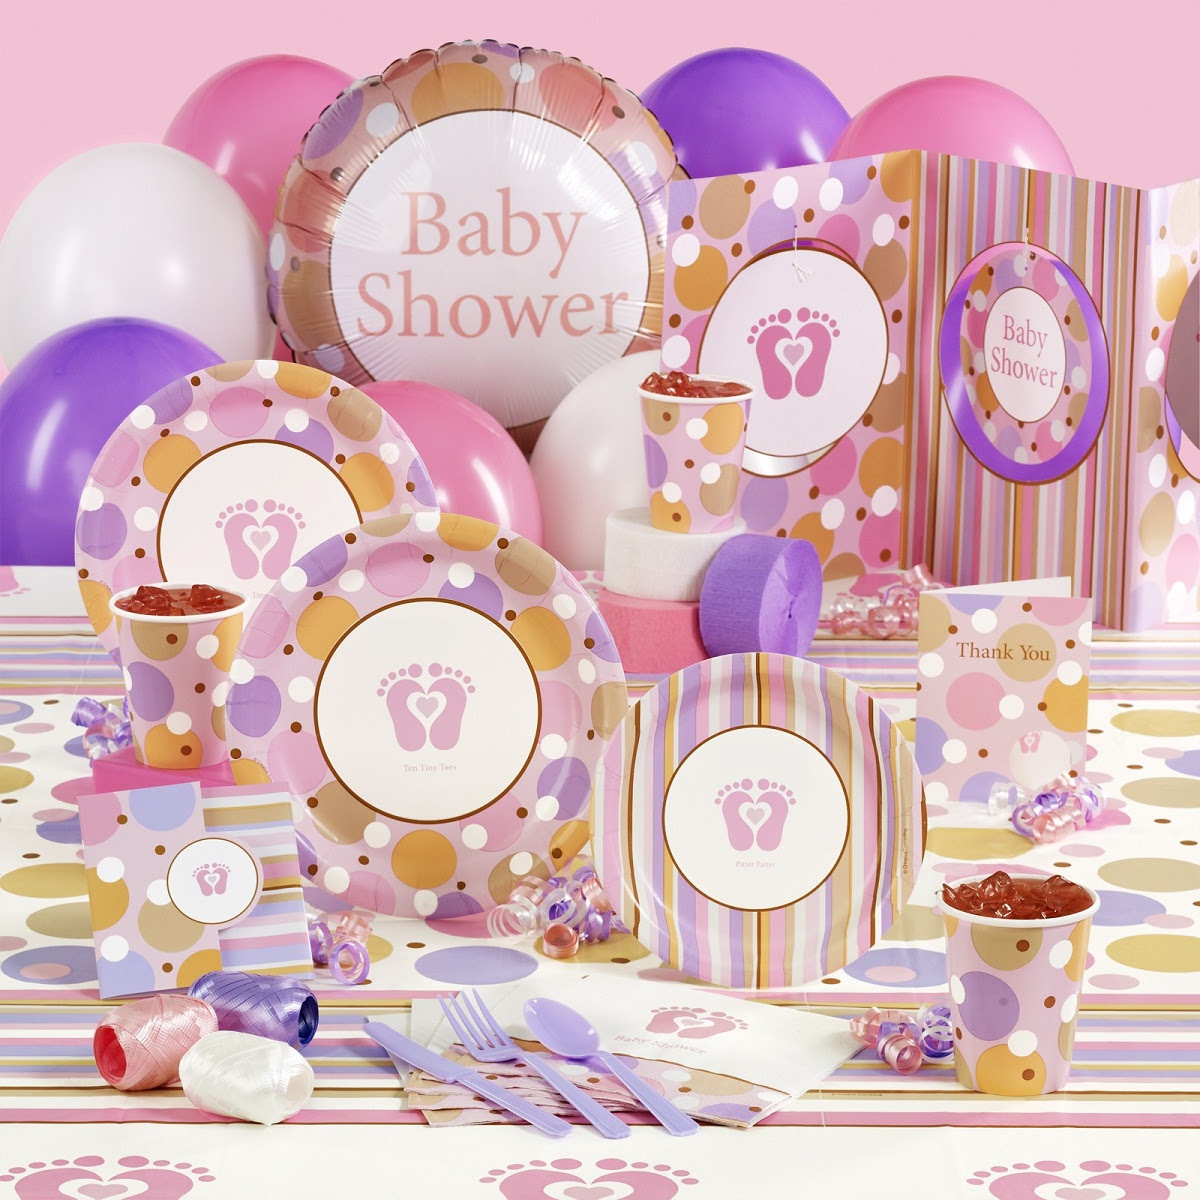 planning_a_baby_shower